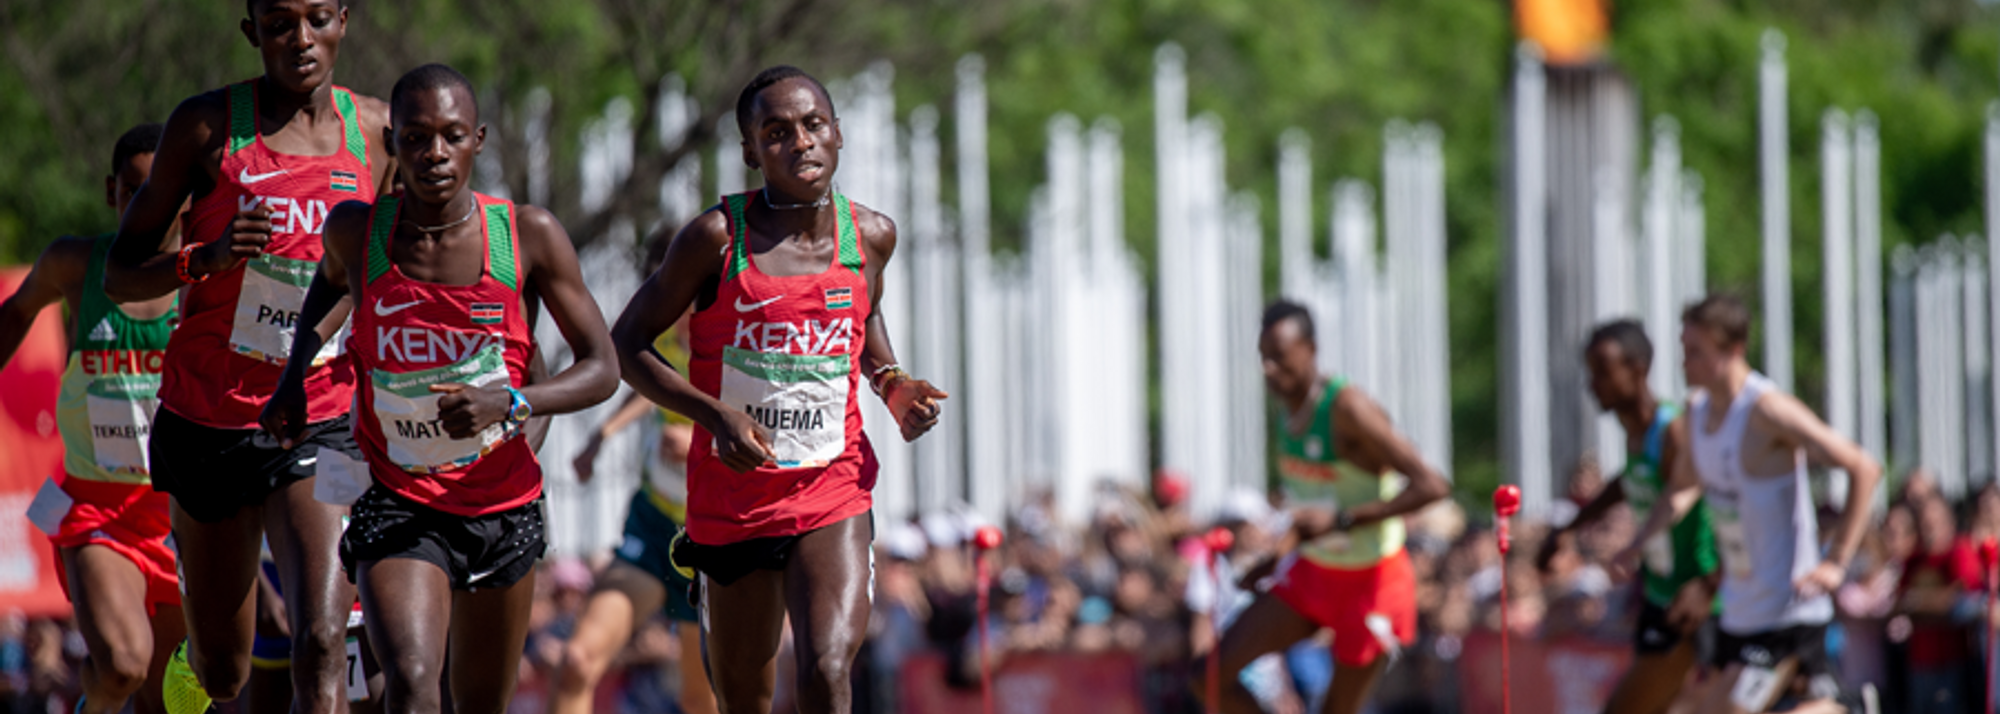 After a 94-year hiatus, cross country returned to the Olympic arena on Monday (15) at the Buenos Aires 2018 Youth Olympic Games.